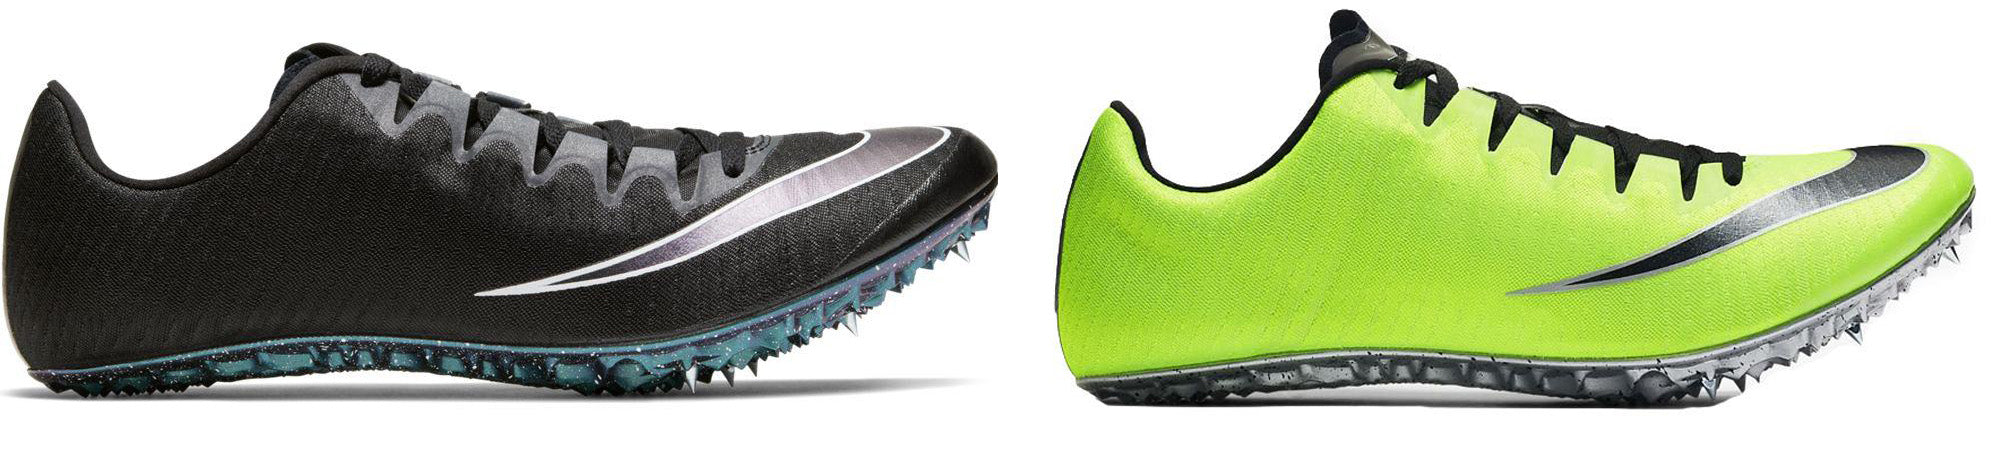 Nike Superfly Elite Sprint Spikes